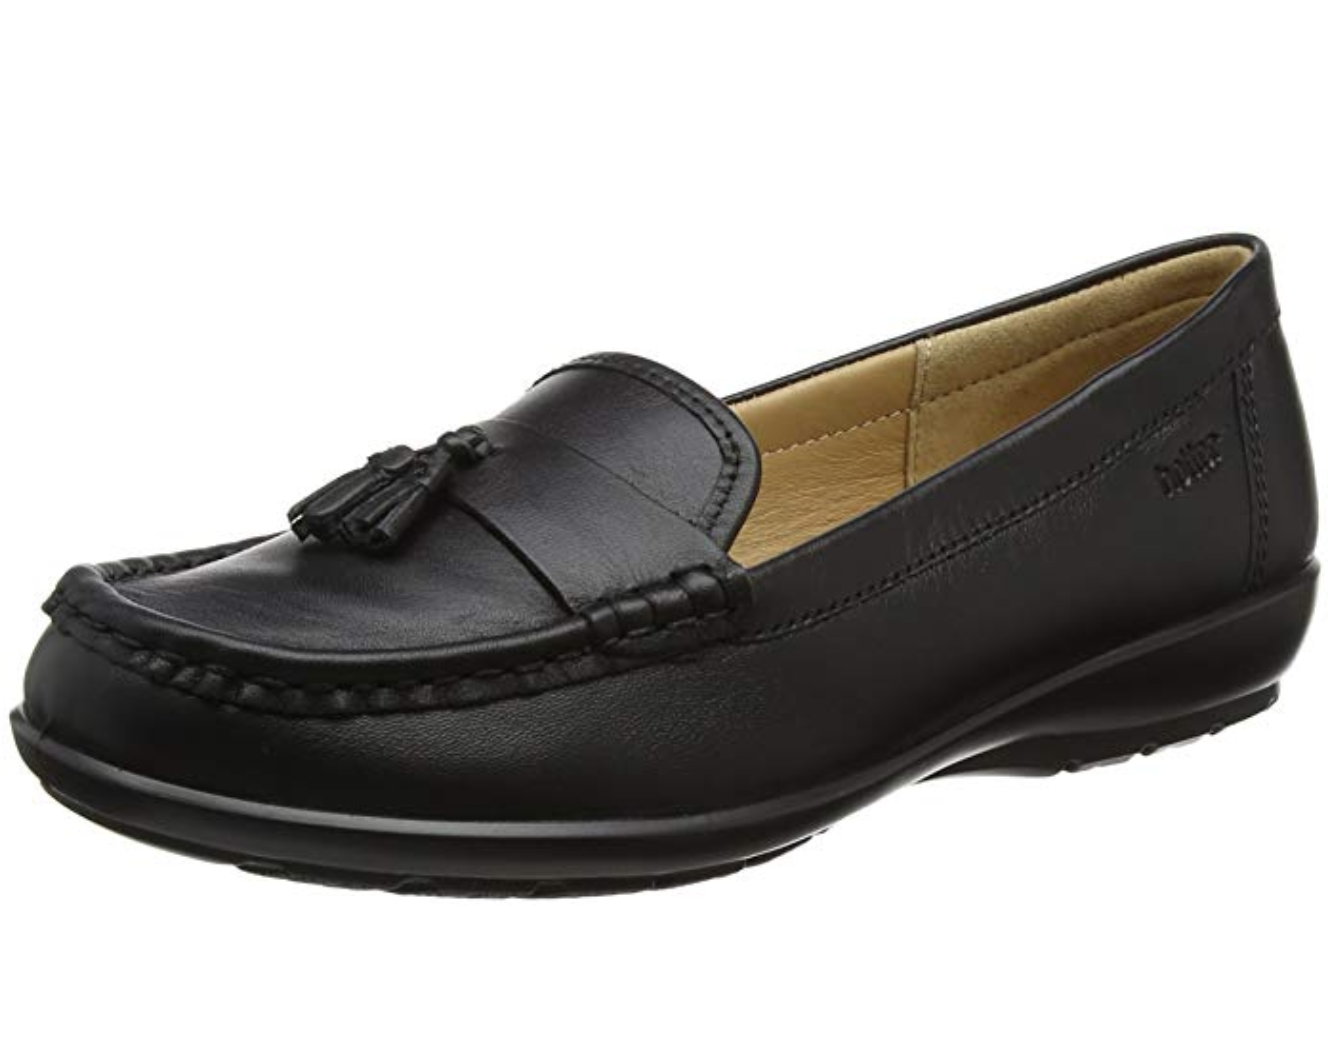 Hotter Abbeyville Womens UK 7 & 8 STD Black Leather Leather Leather Slip On Loafer Flats shoes 15aeec